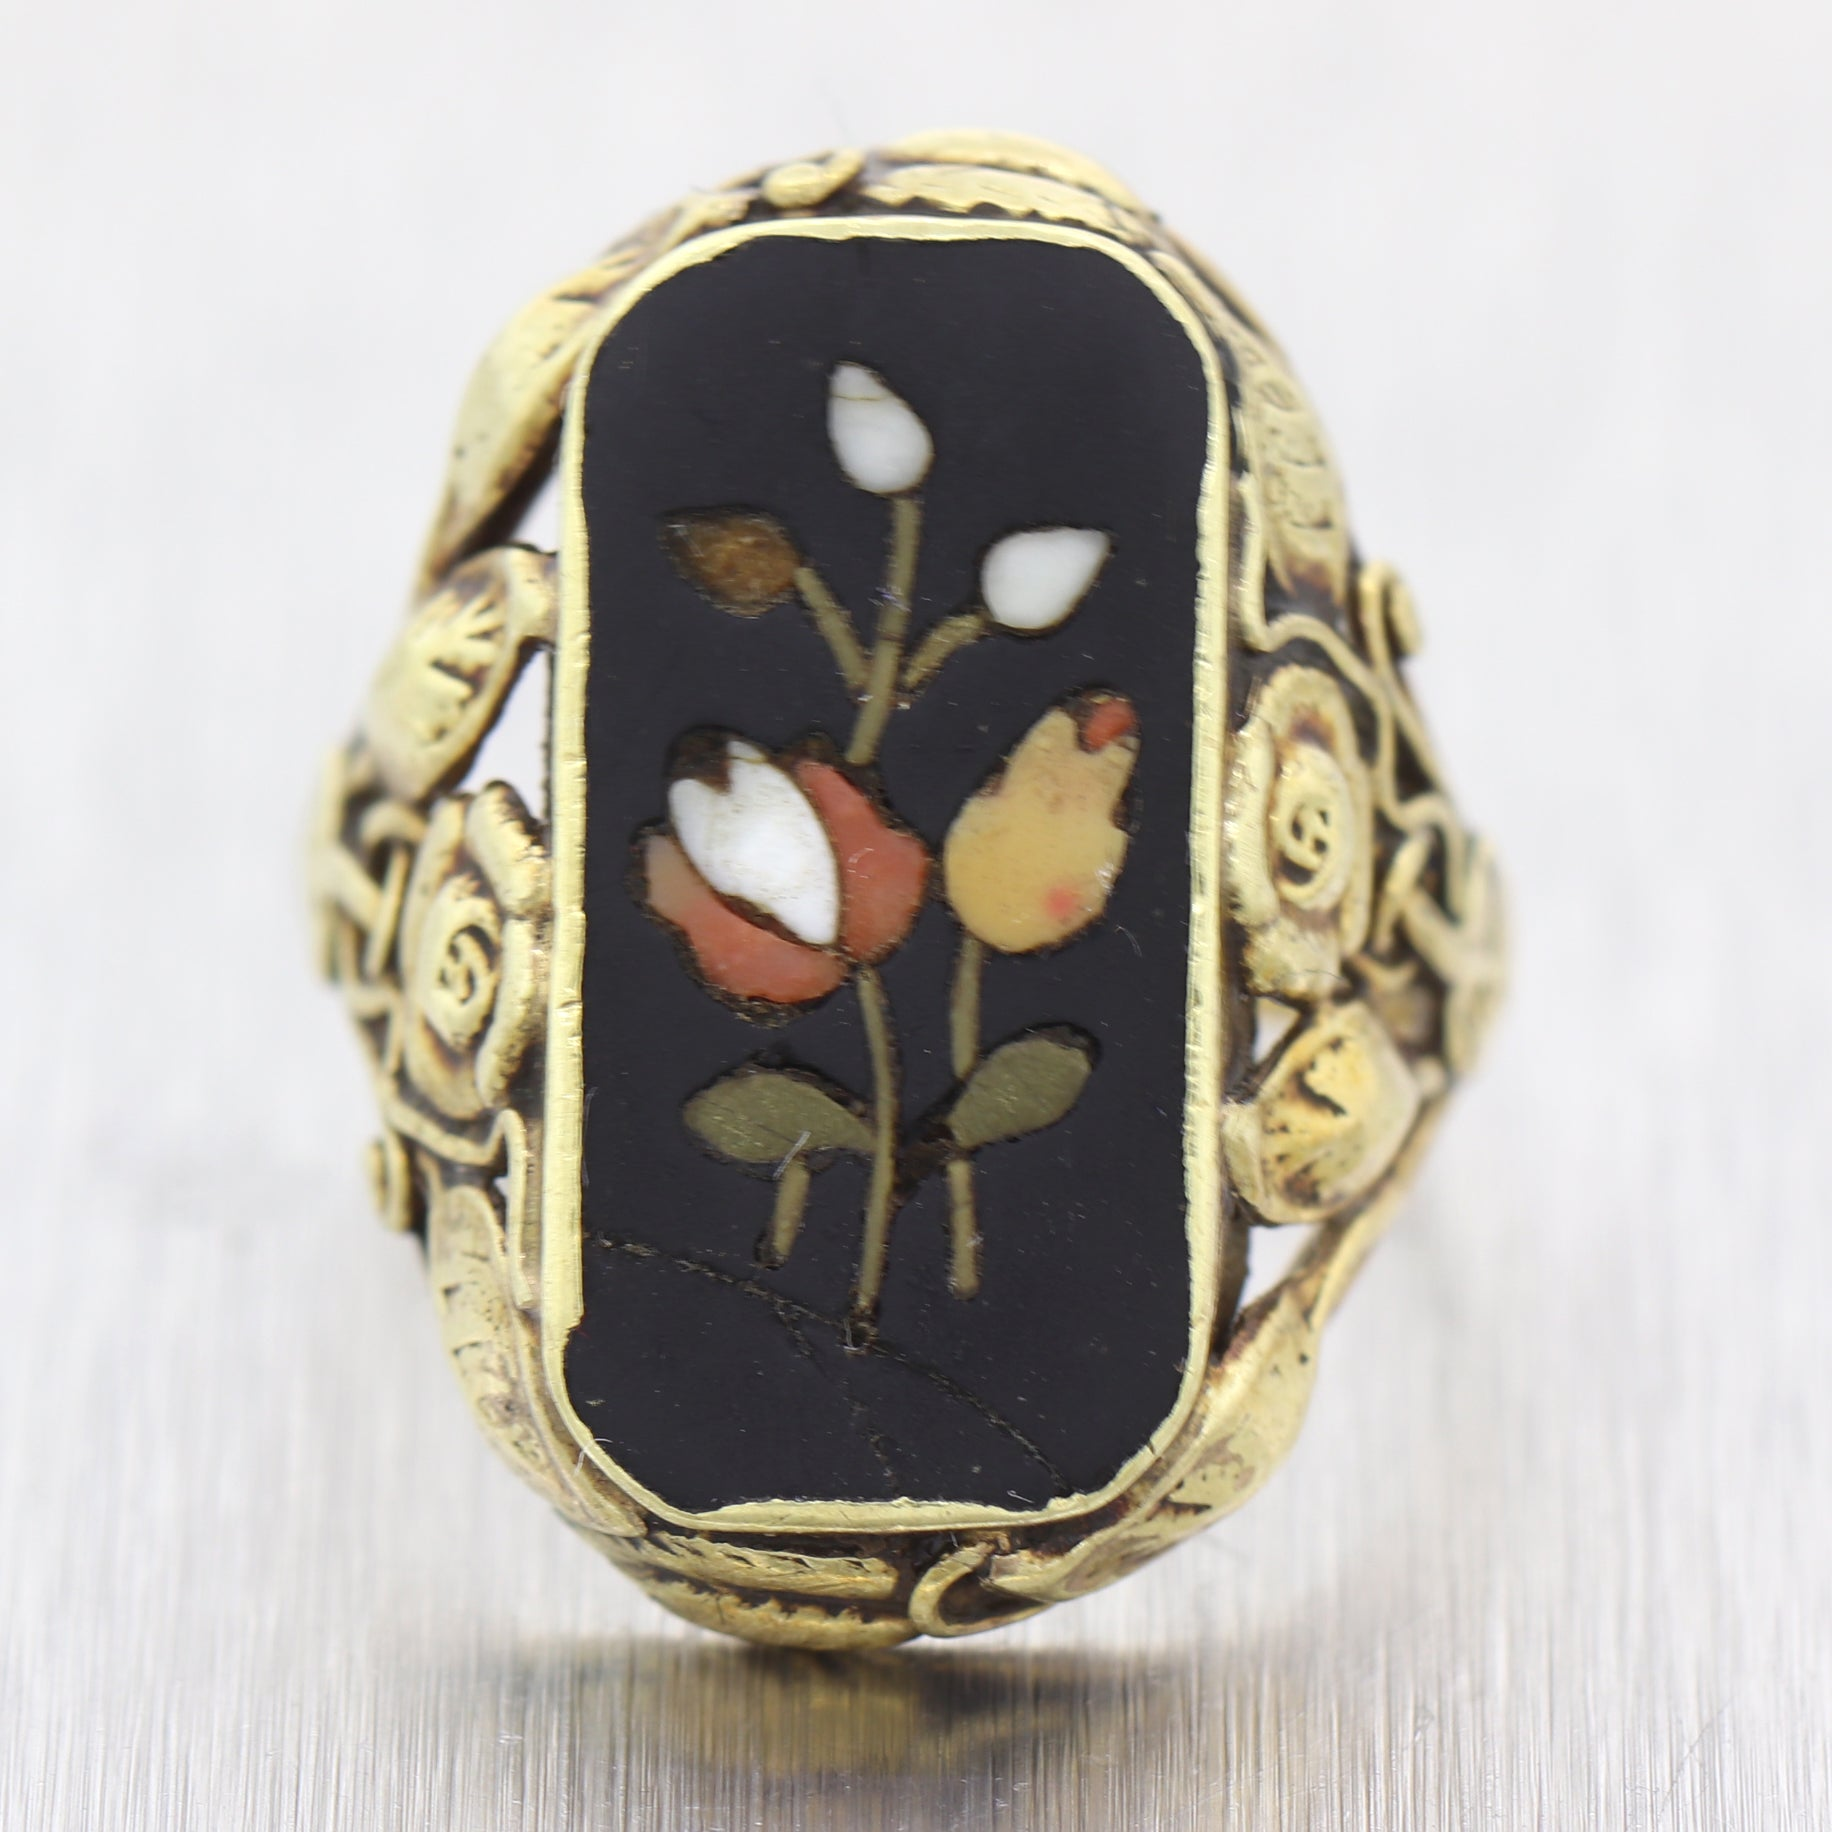 1910's Antique Art Nouveau 14k Yellow Gold Pietra Dura Flower Ring